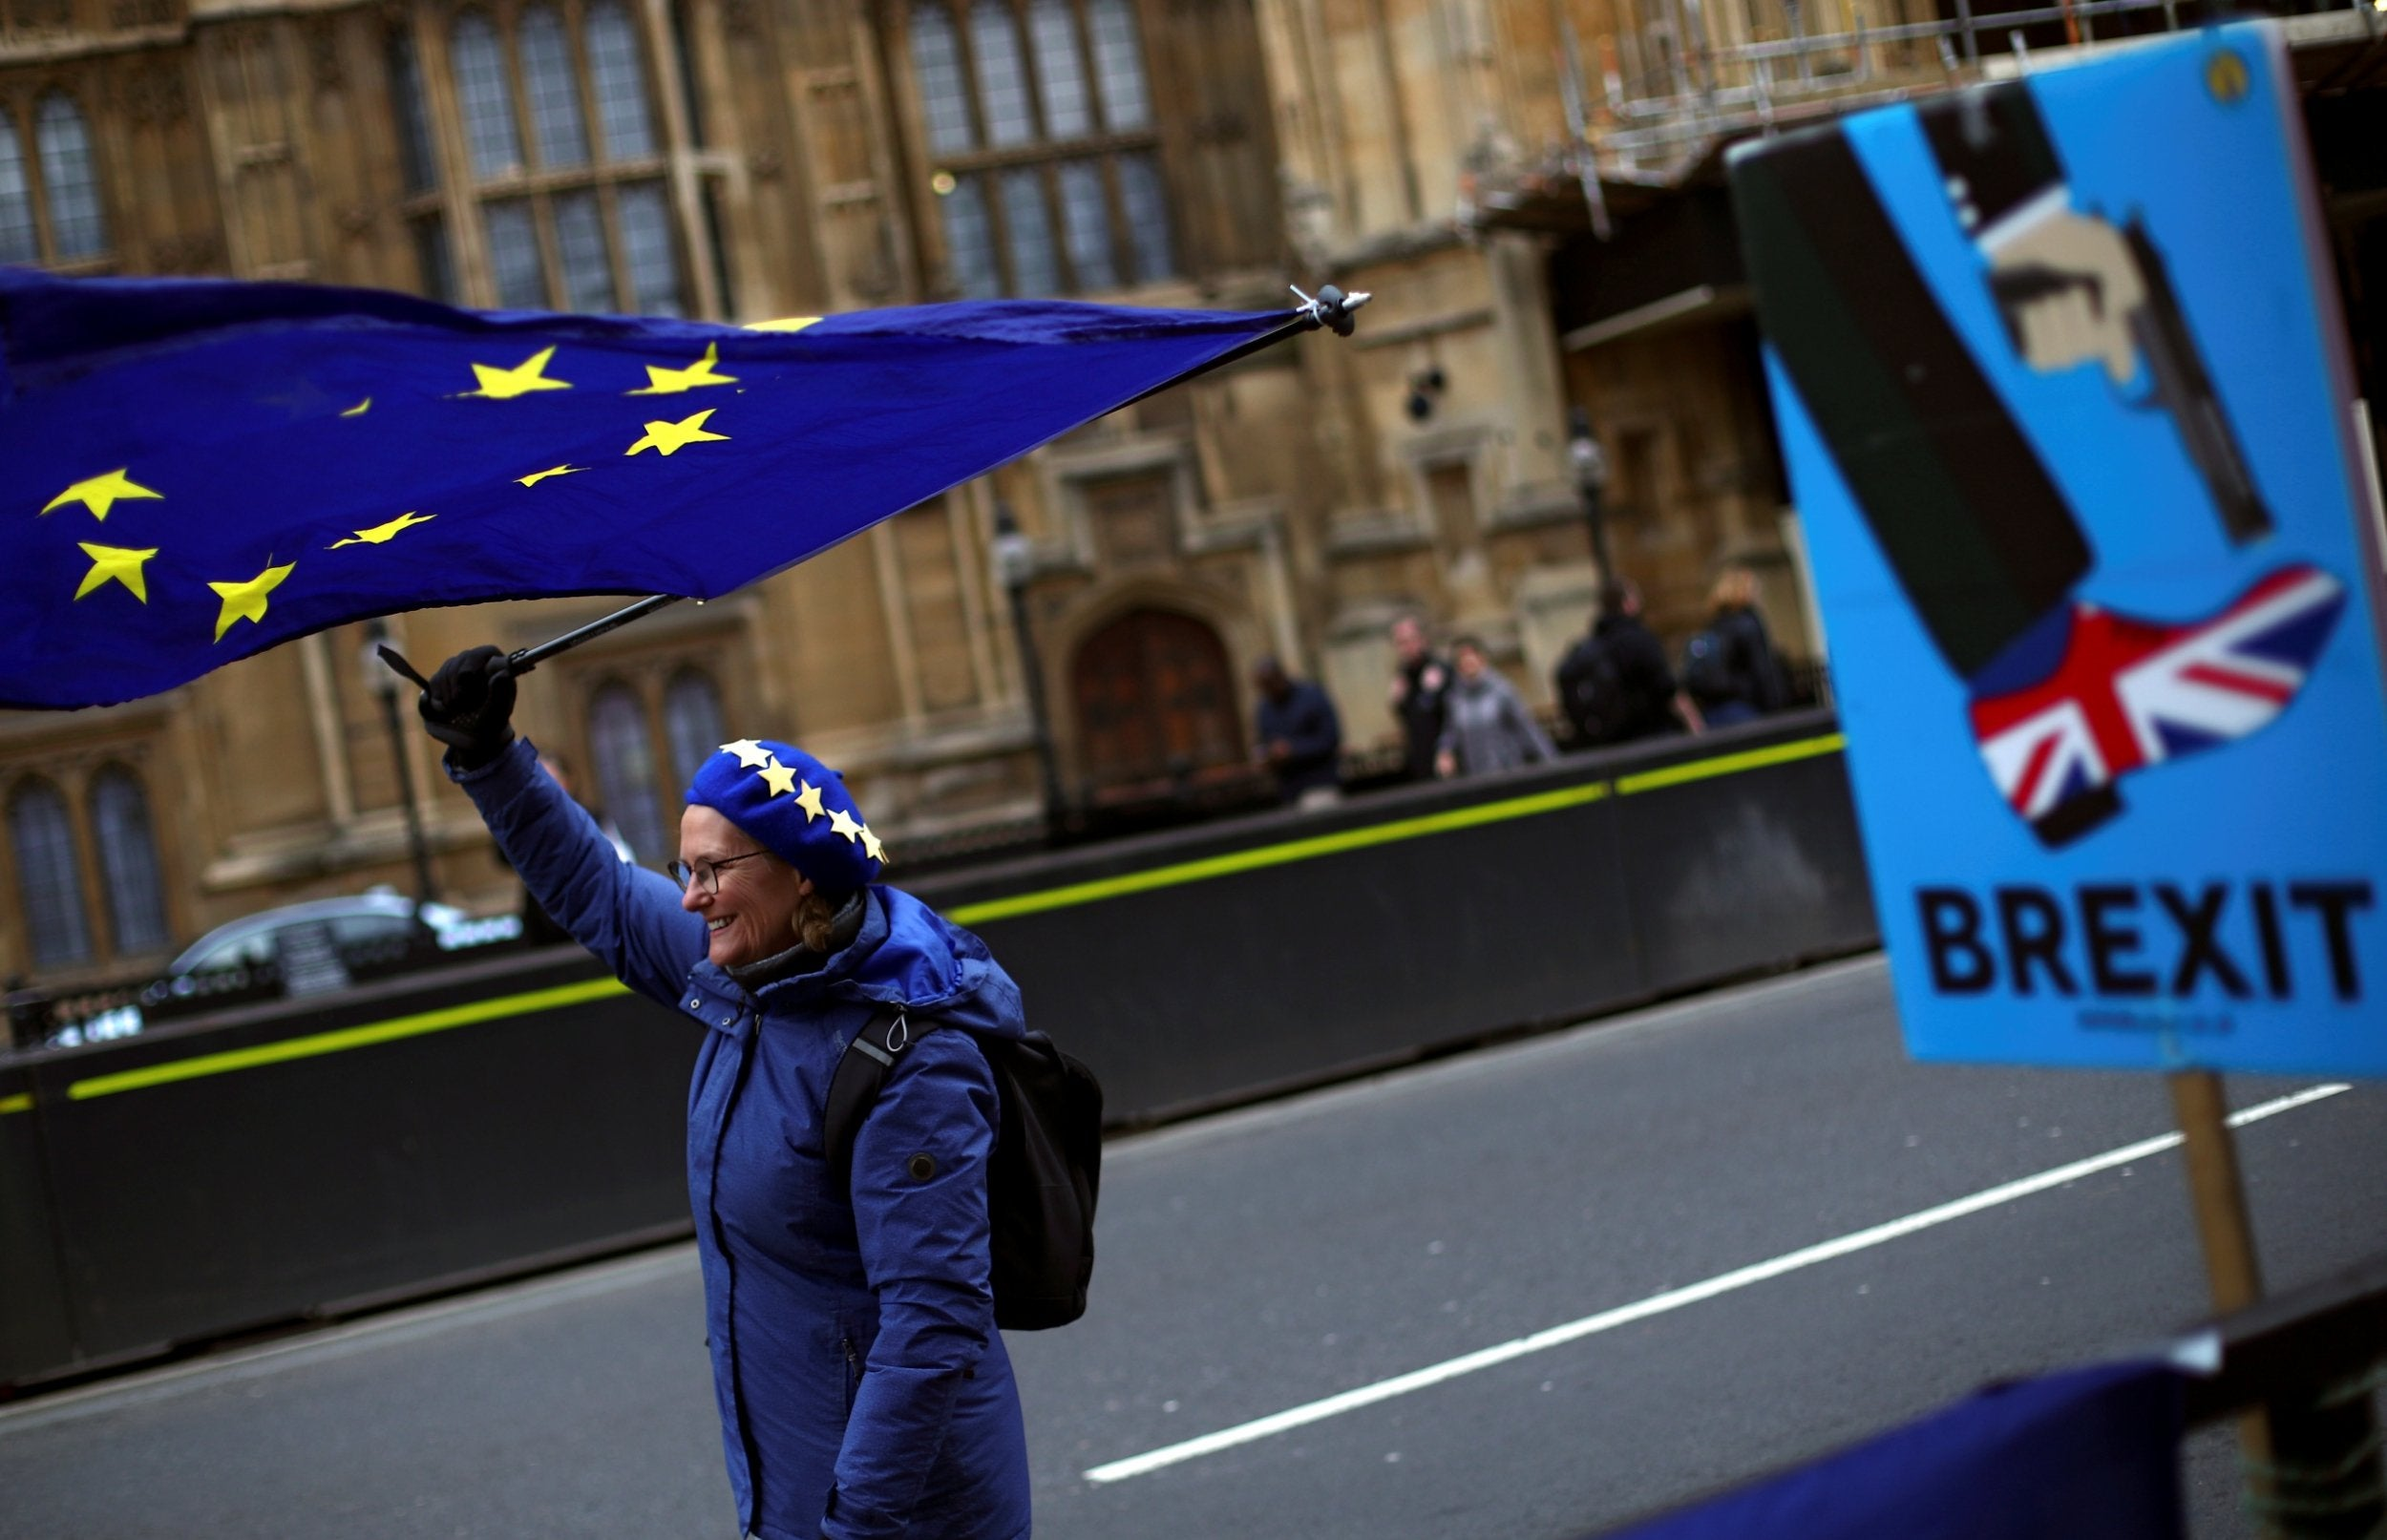 As mayor of London, I'm clear we need to revoke Article 50 and end this Brexit disaster